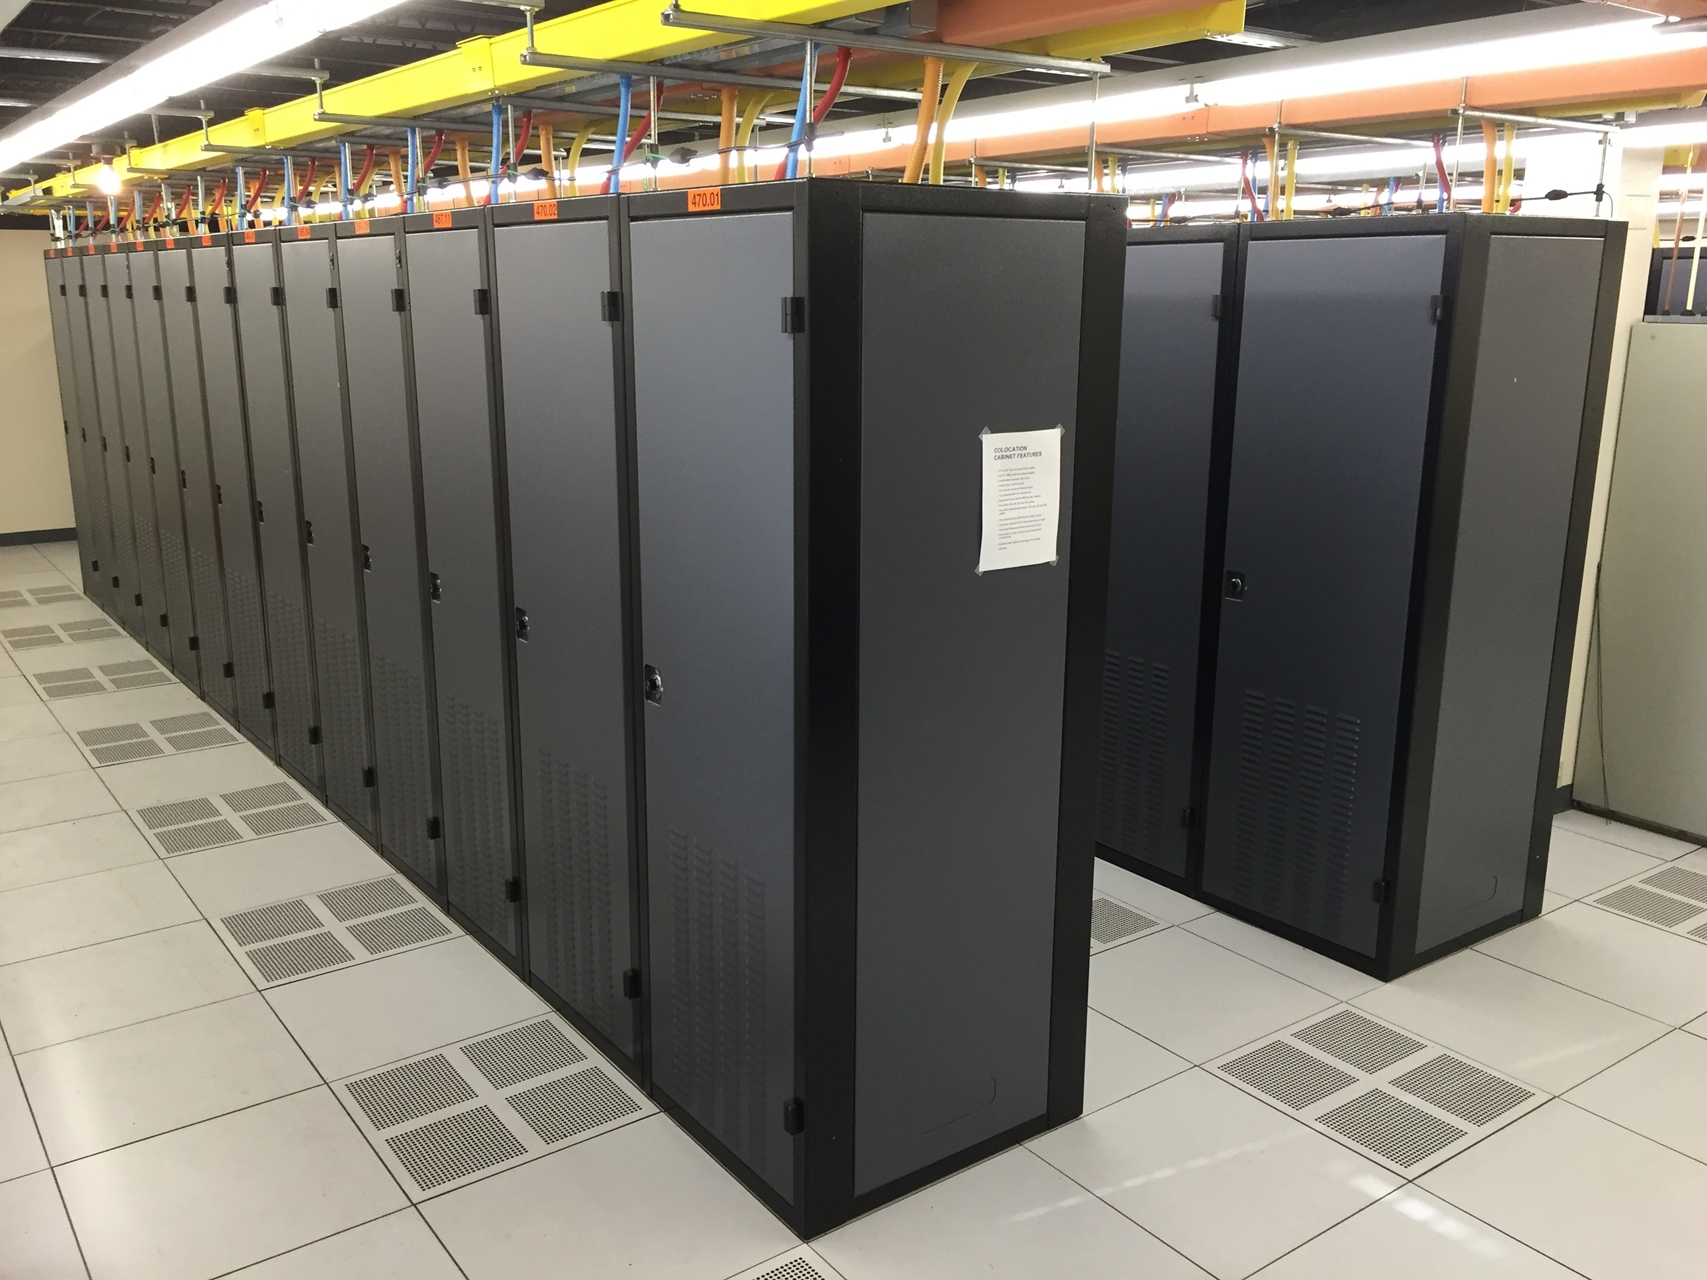 I74 Wired Office & Data Center